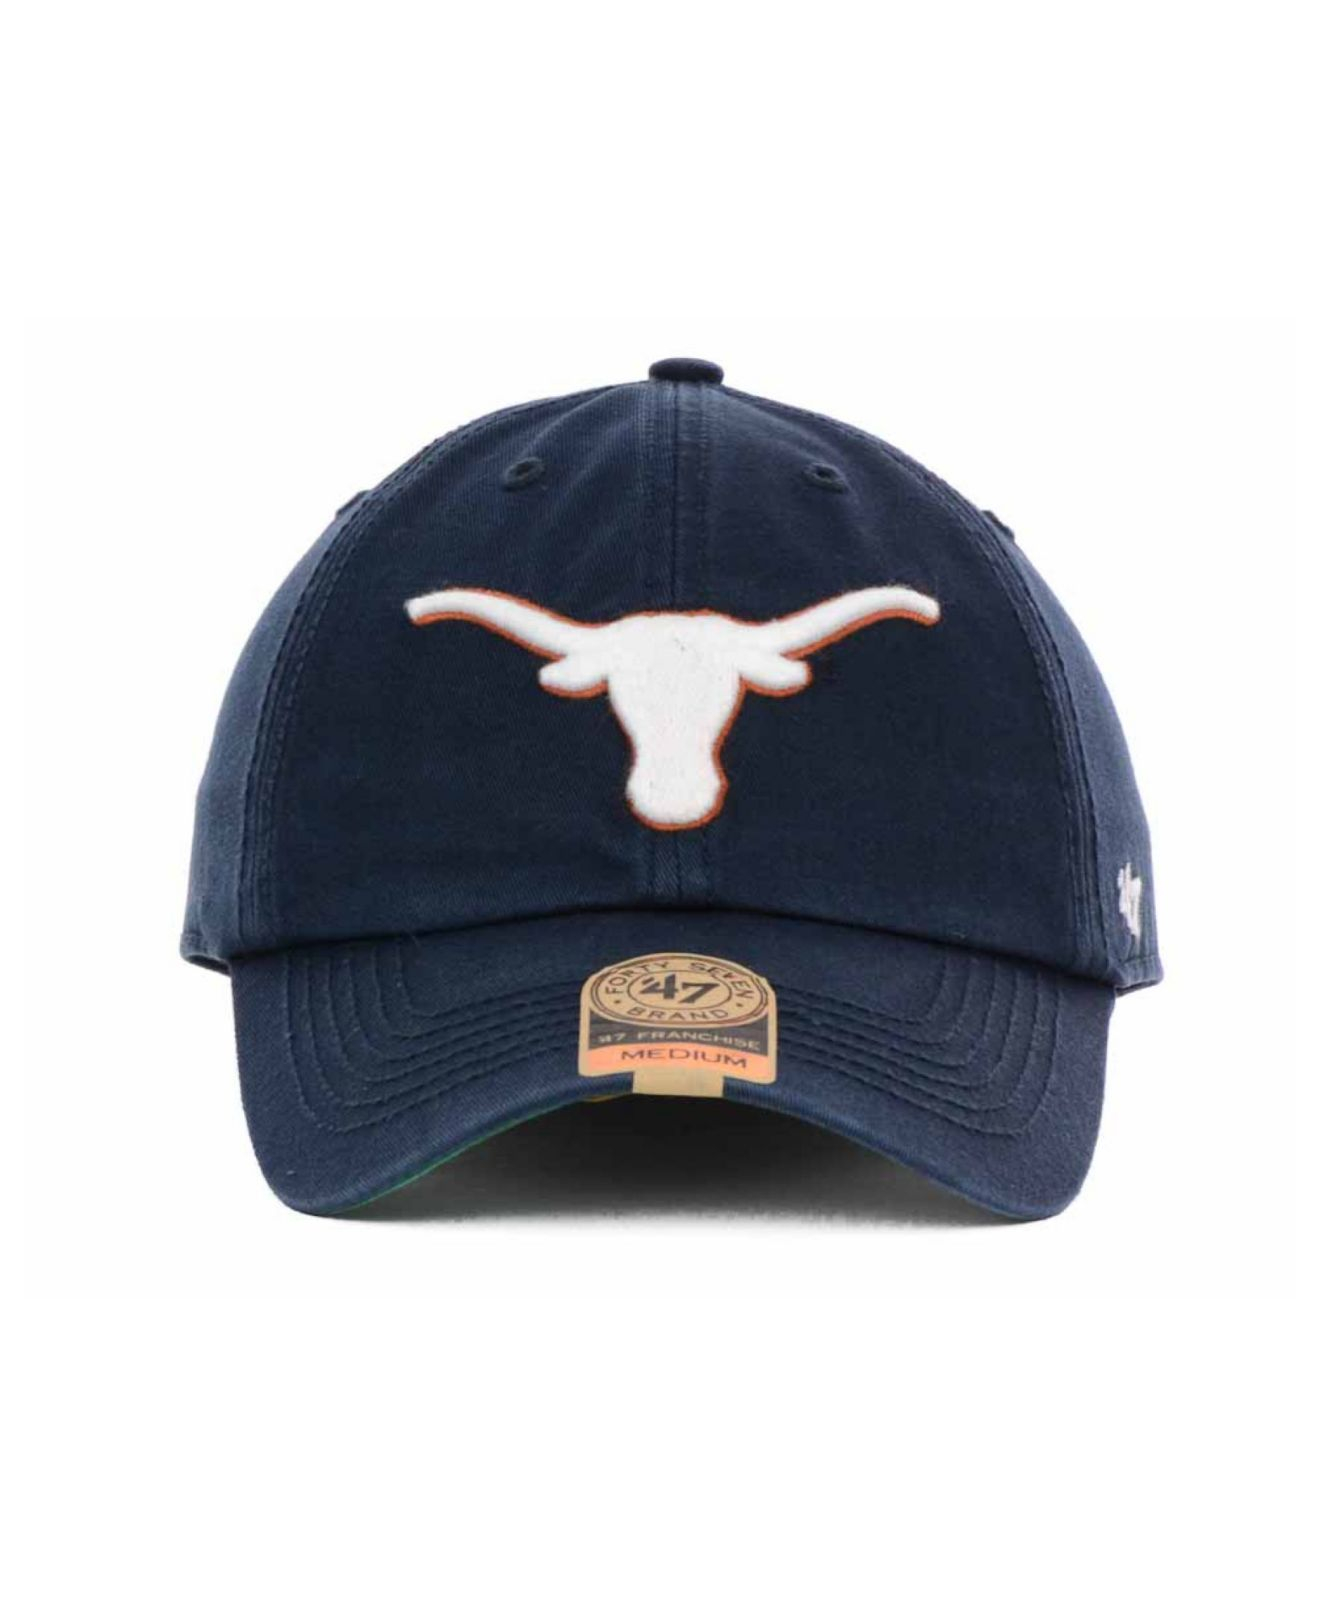 99a6a2f321034 47 Brand Texas Longhorns Navy Franchise Cap in Blue for Men - Lyst